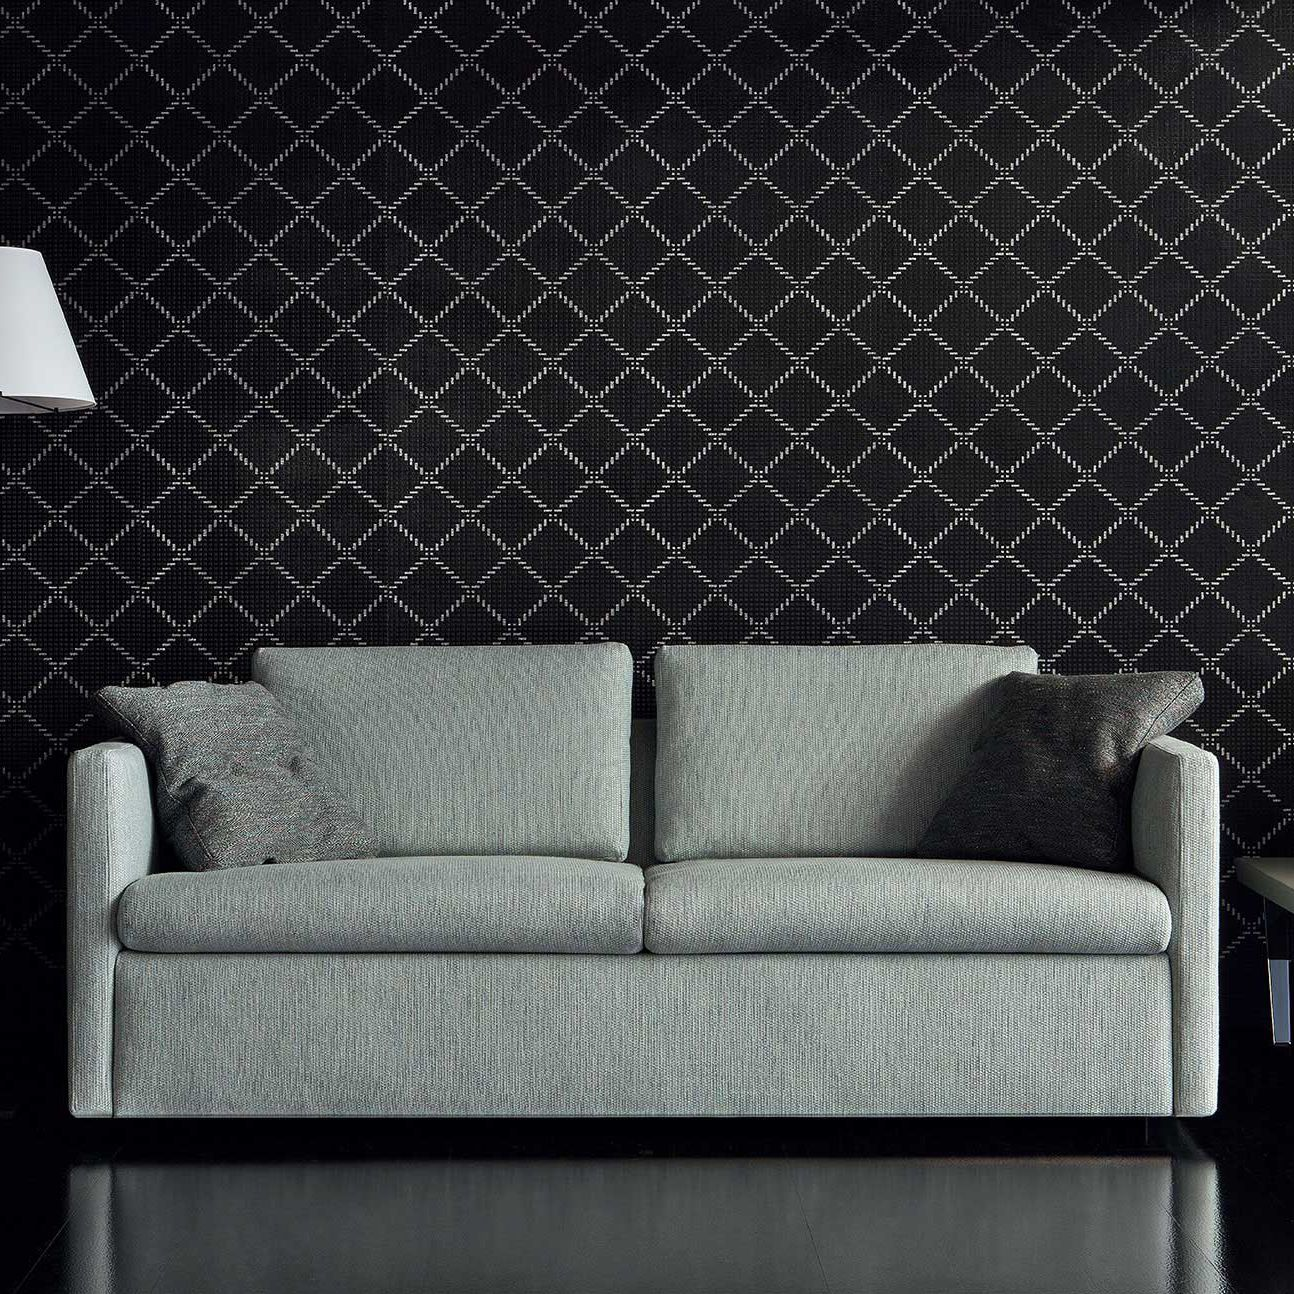 Sofa Bed Contemporary Fabric 2 Person Swing By Studio Res